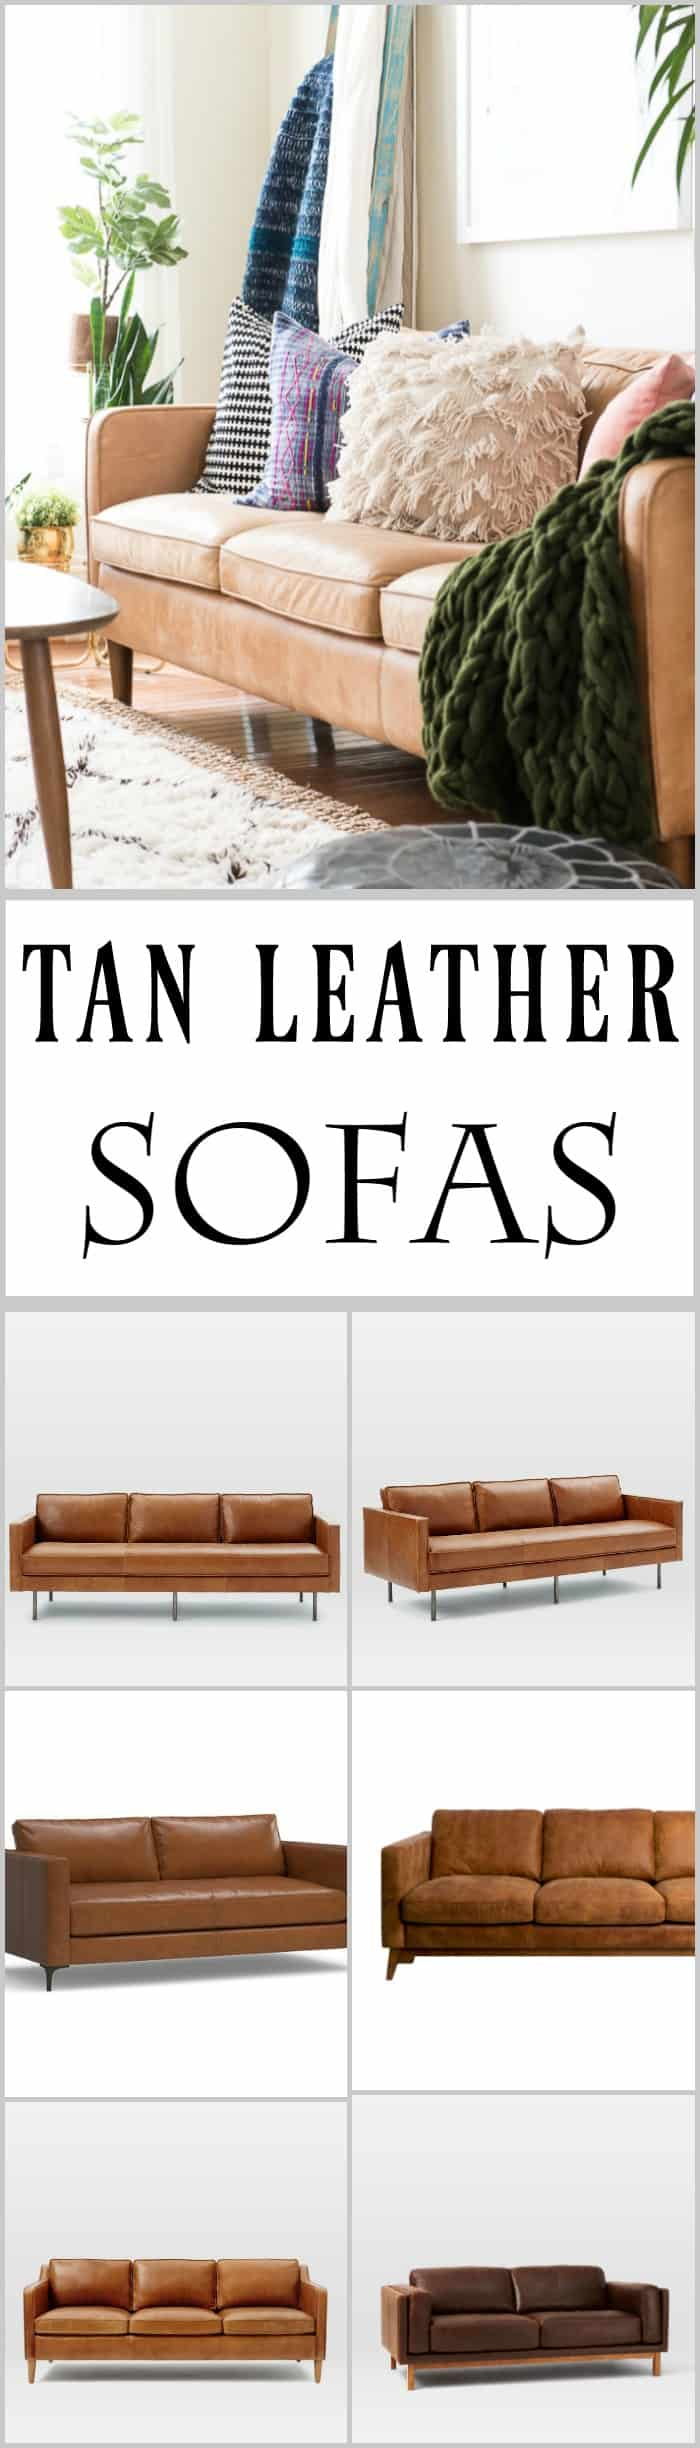 love is style days sofas i couch sofa my fun all these hamilton in and much leather modern are tan so